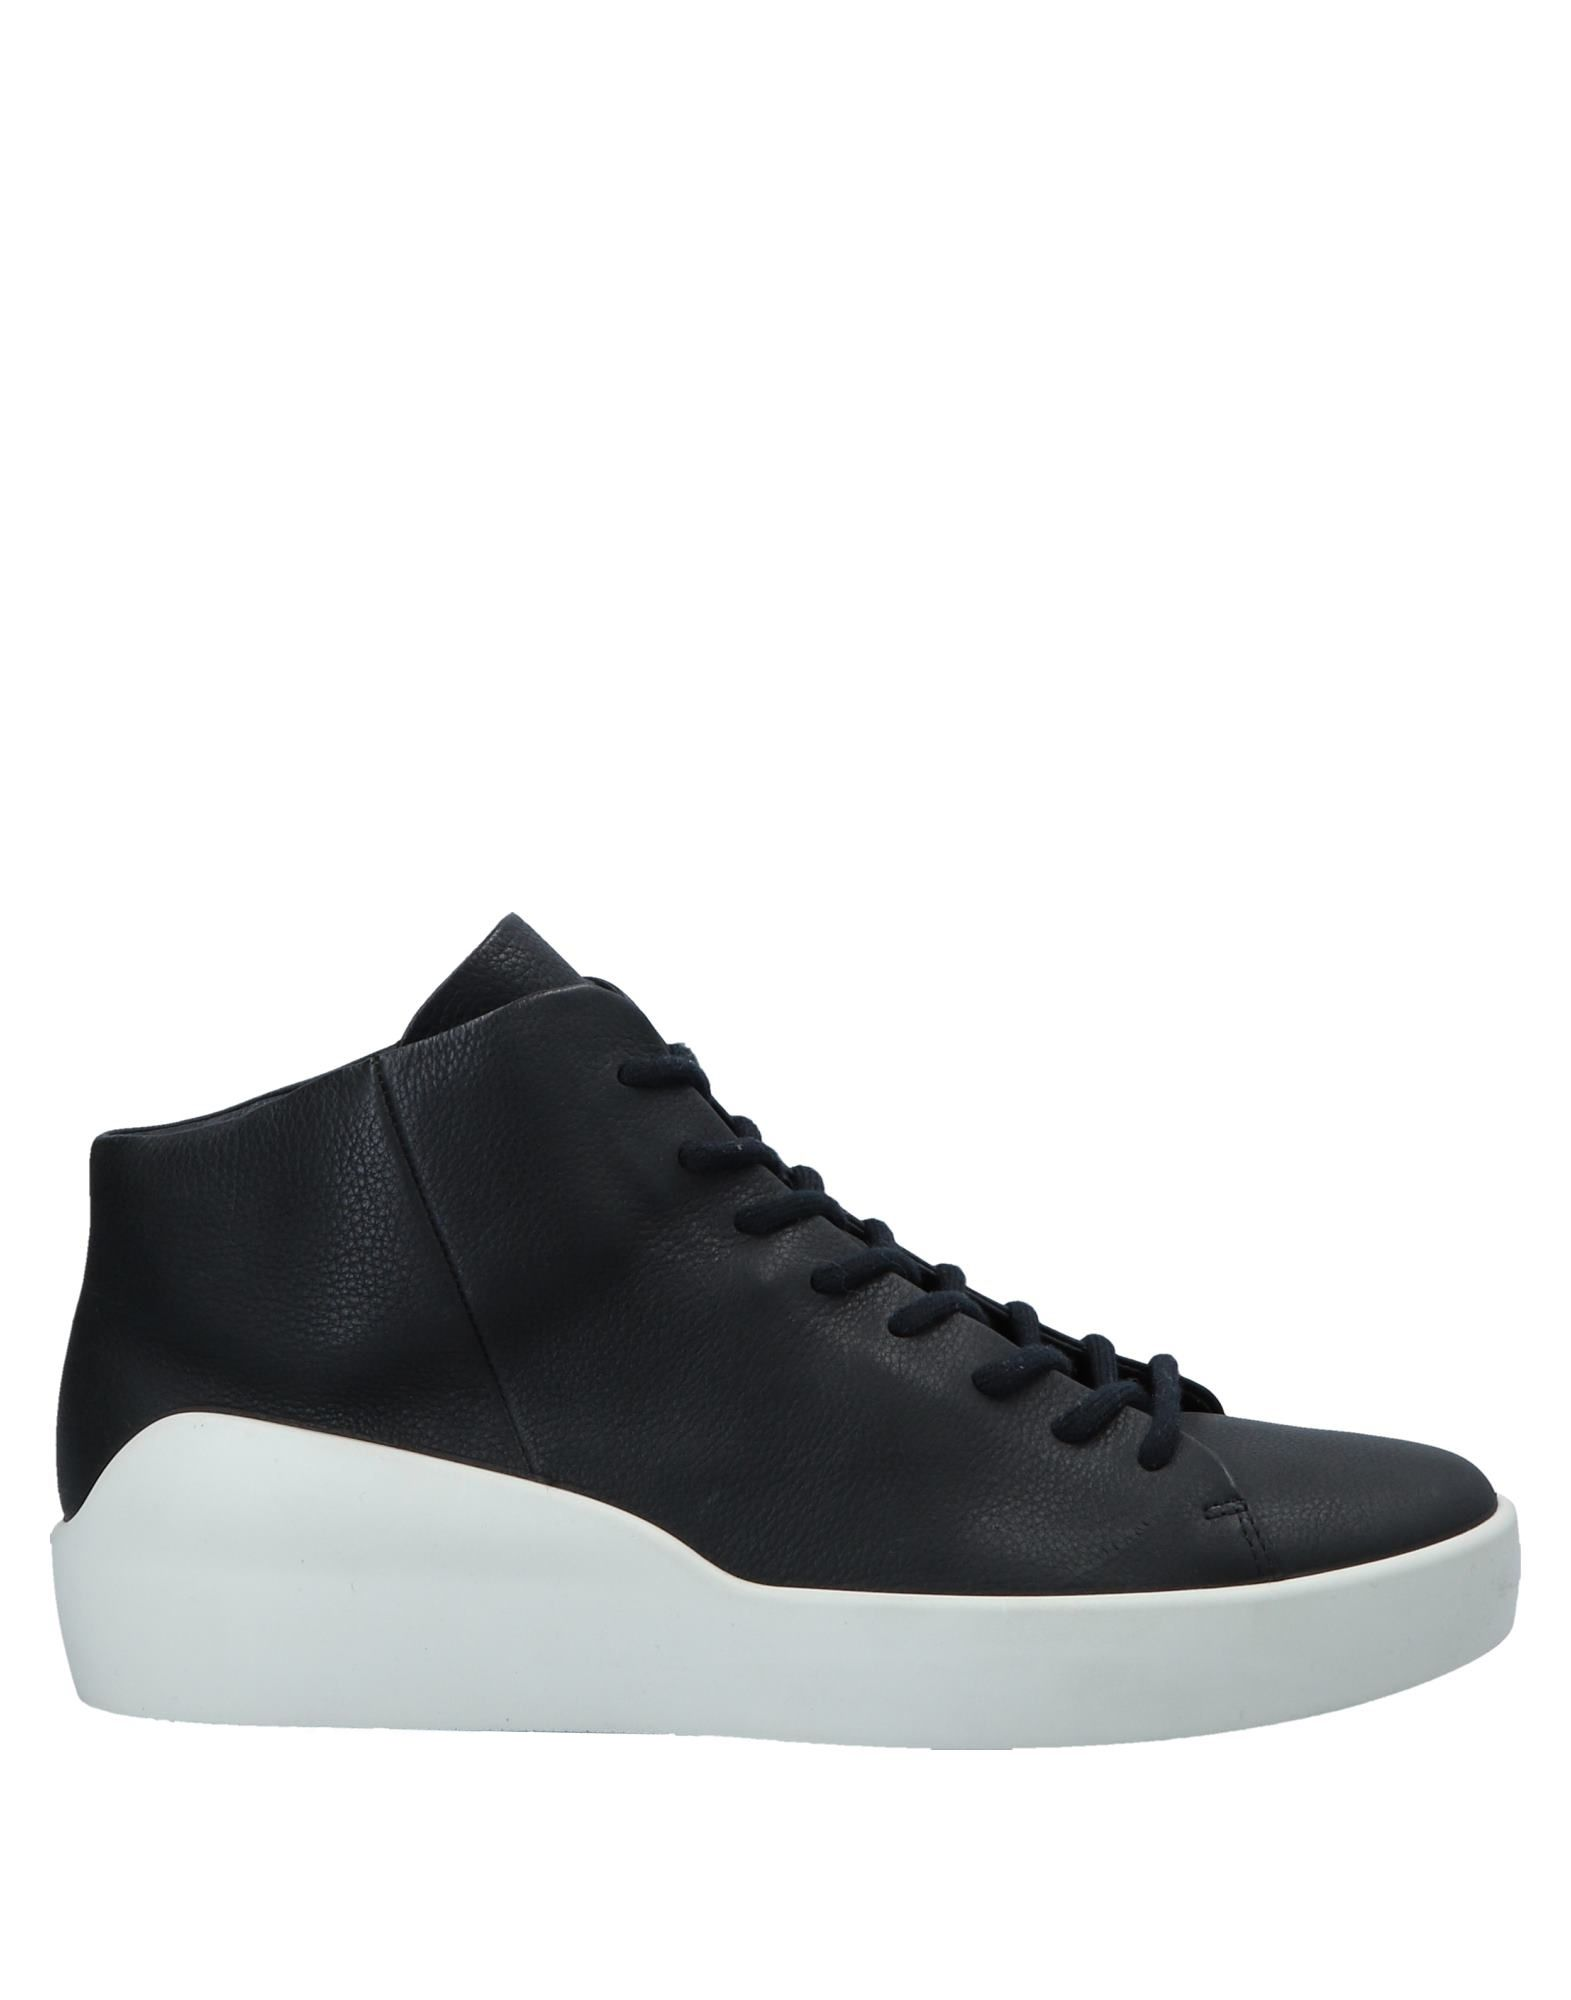 Sneakers The Last Conspiracy Uomo - 11547652MQ